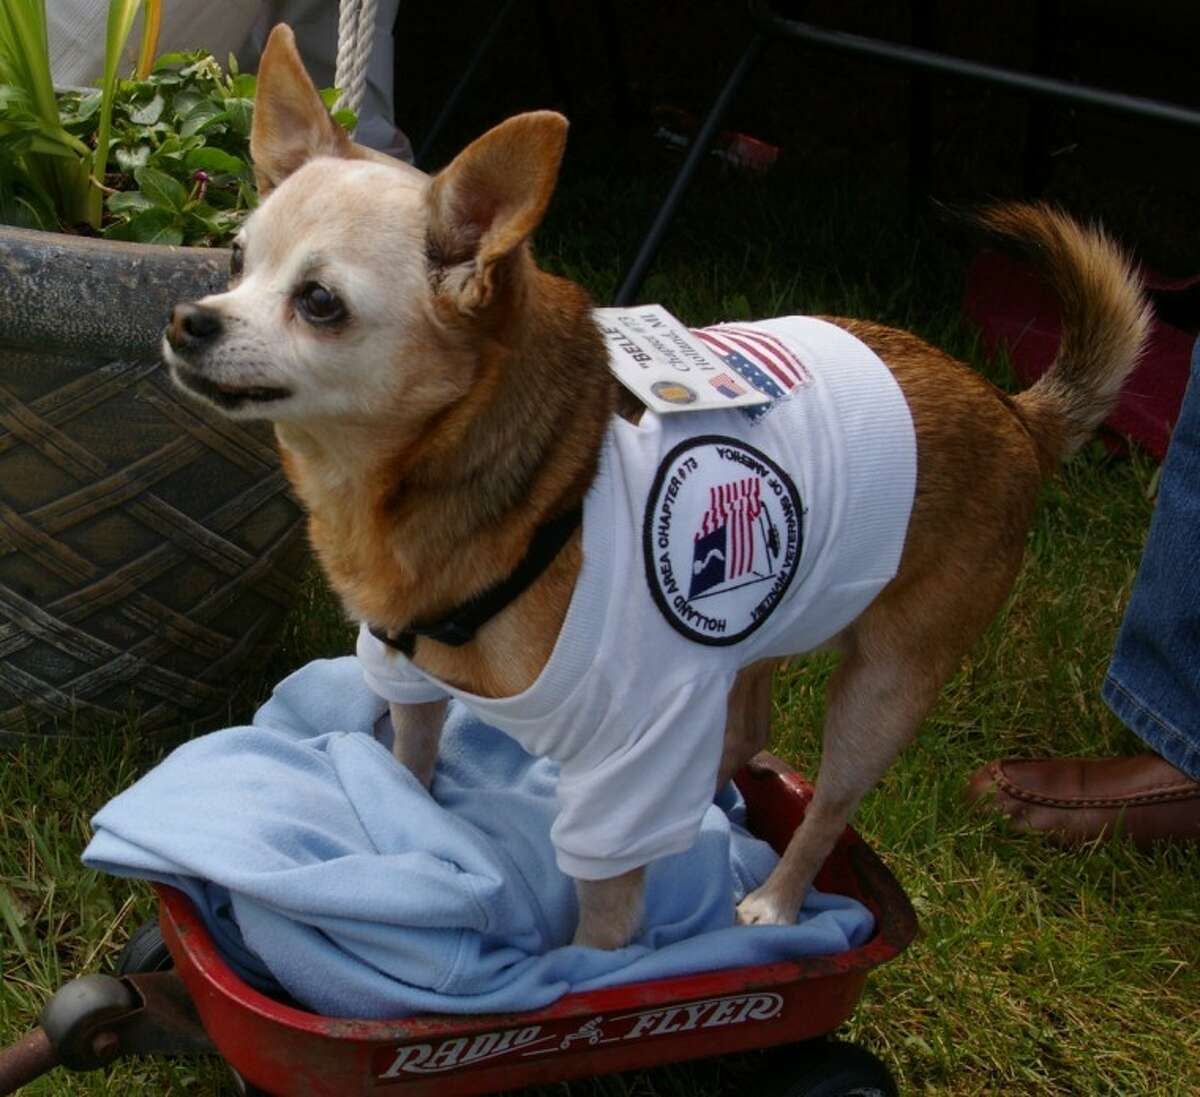 Stuart Frohm   for the Daily NewsBelle, a Chihuahua also called Tinkerbell, tries out the little wagon bought for her for $5. The dog is owned by Ron and Linda DeWaard of Holland.